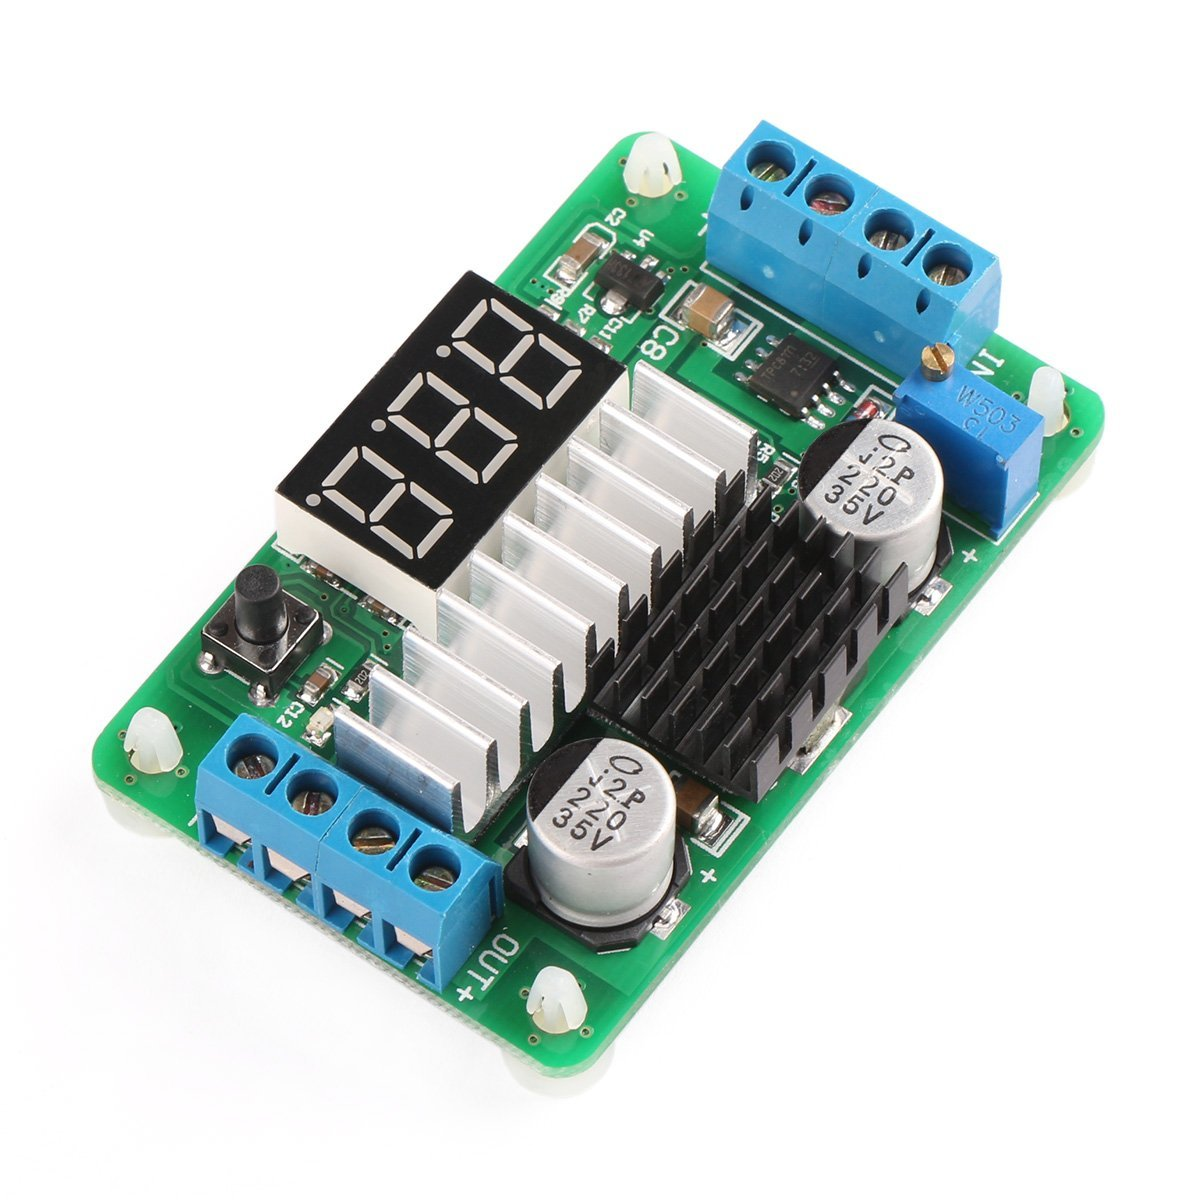 3.5V-30V DC Boost Converter Power Transformer Voltage Regulator 5V/12V Step Up Volt Module Board for Car Motorcycle Automotive